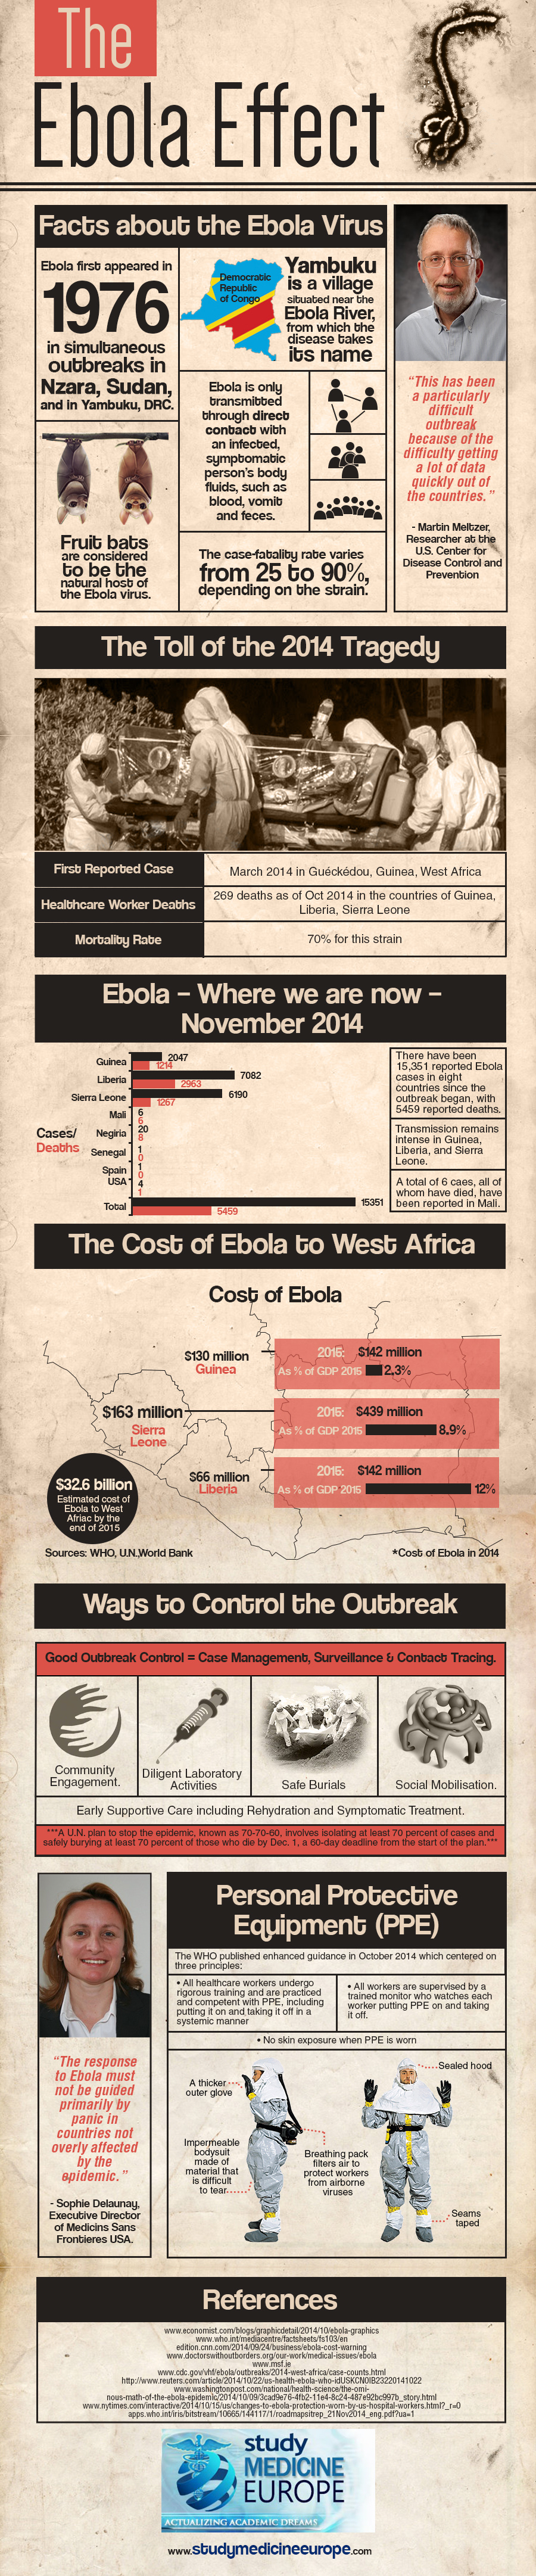 effects of ebola virus Unicef is committed to doing all it can to achieve the sustainable development goals (sdgs), in partnership with governments, civil society, business, academia and the united nations family.